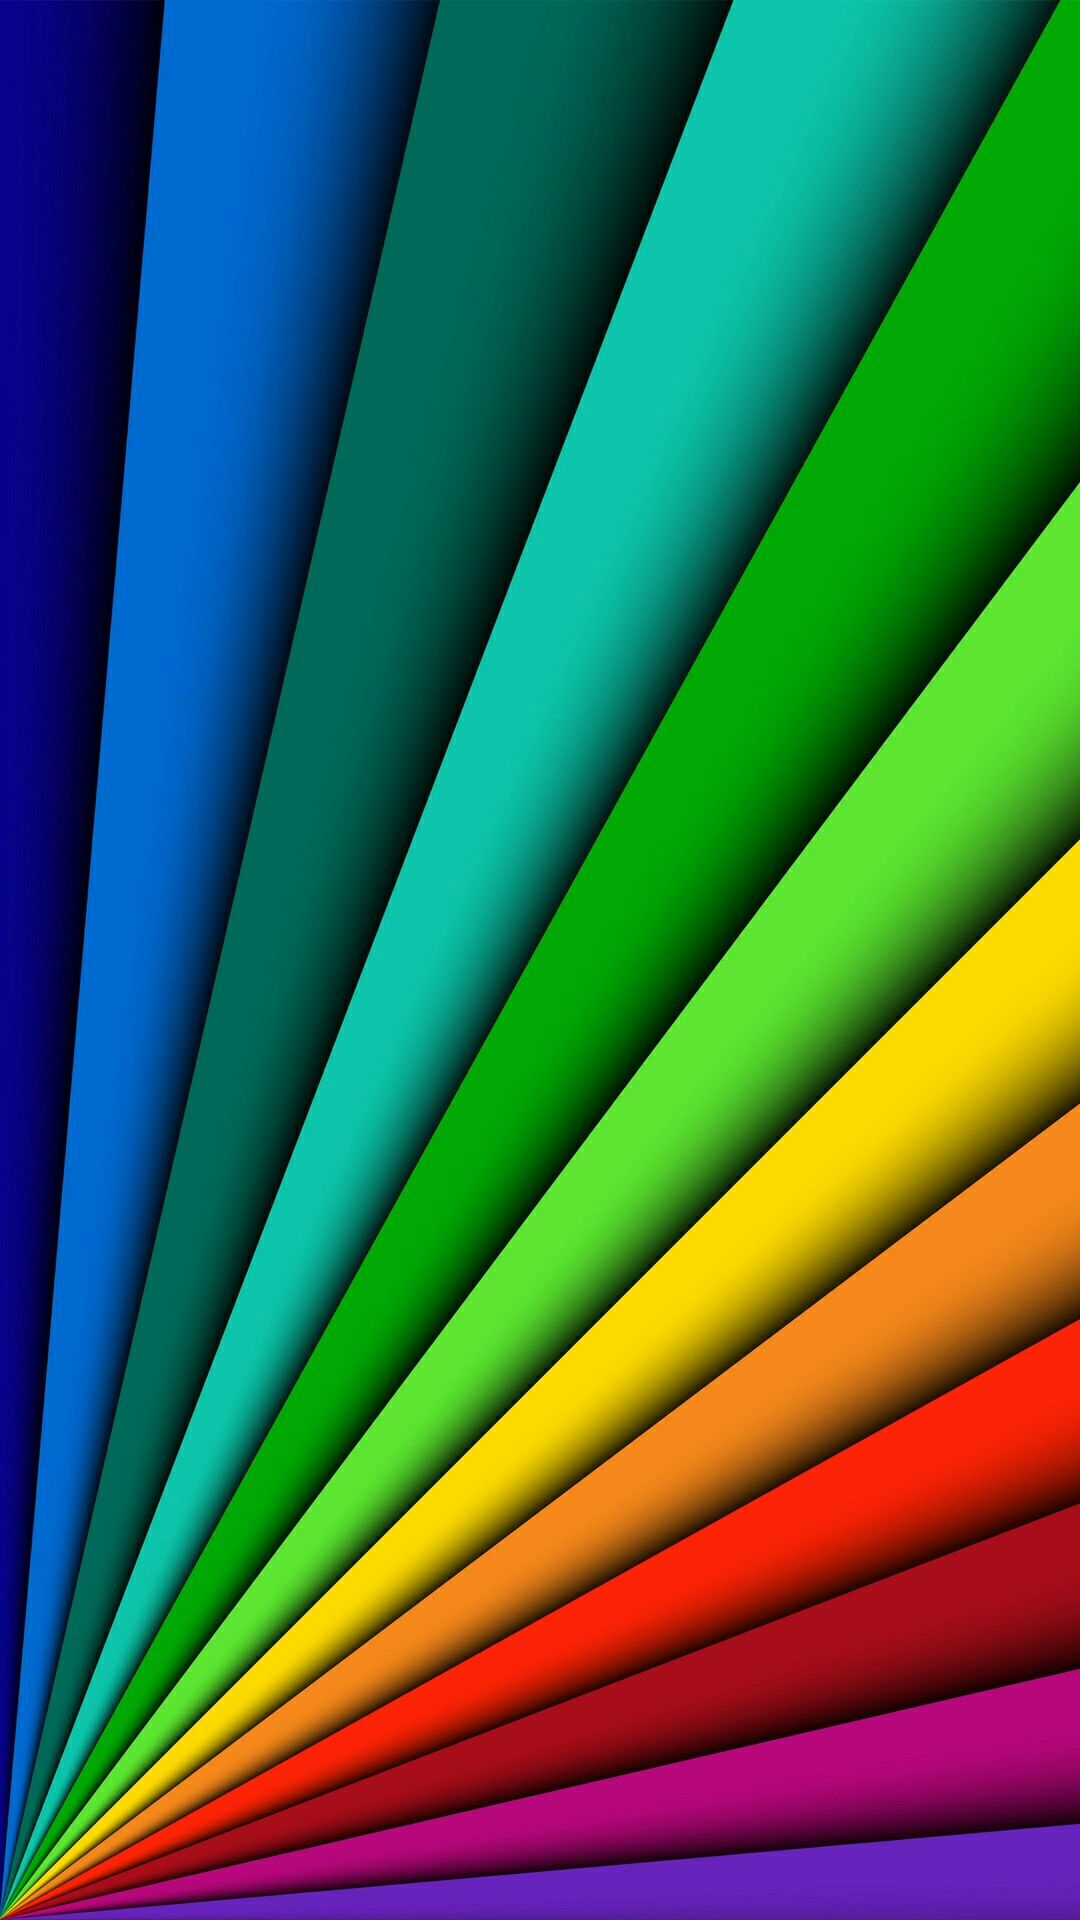 Free Colorful Geometric Wallpaper: Fanned Out Primary Colors Wallpaper